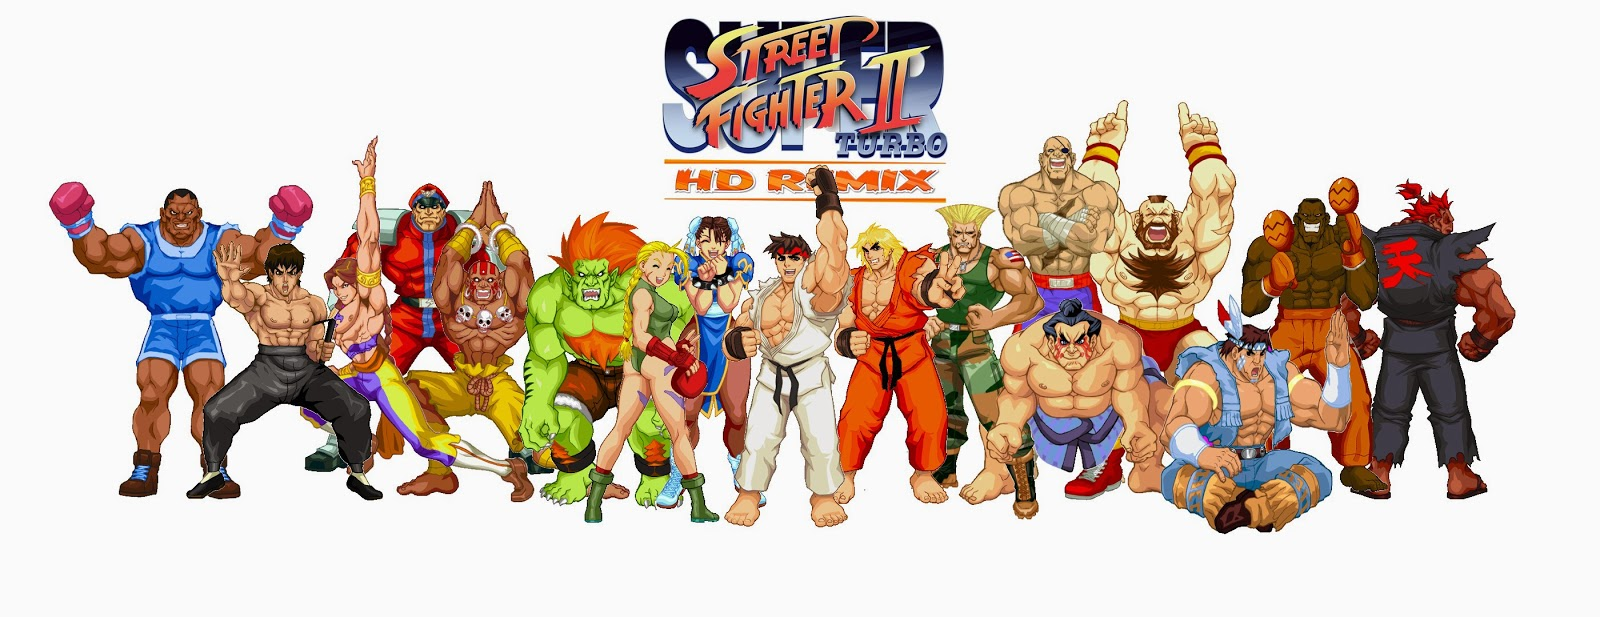 Street Fighter 2 Game Download For PC - Games Software And ...